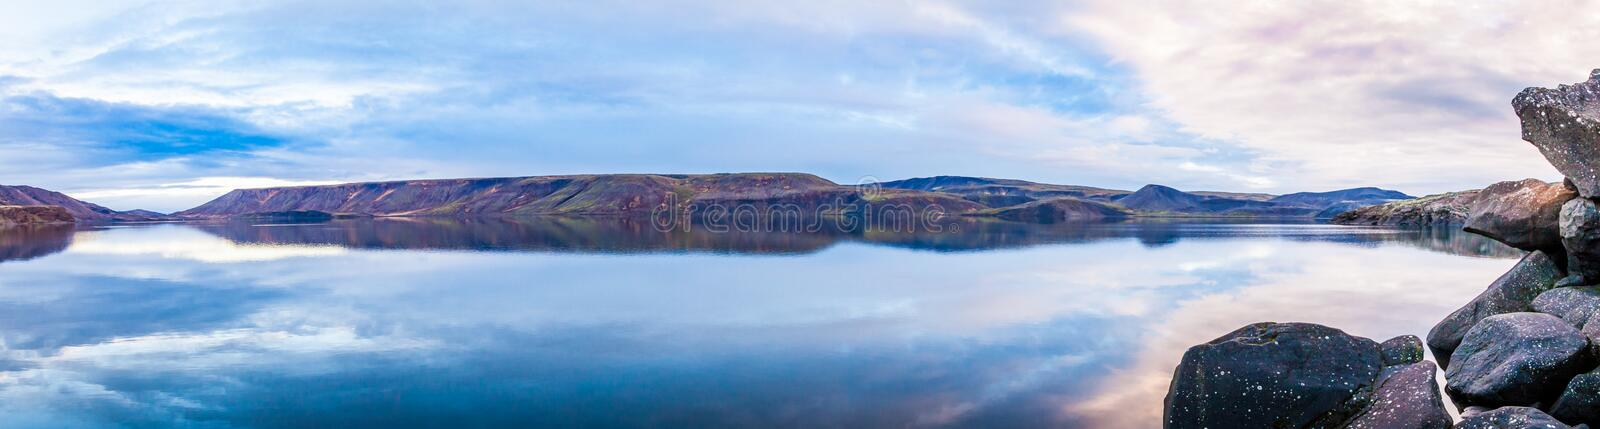 Panorama toujours de lac photographie stock